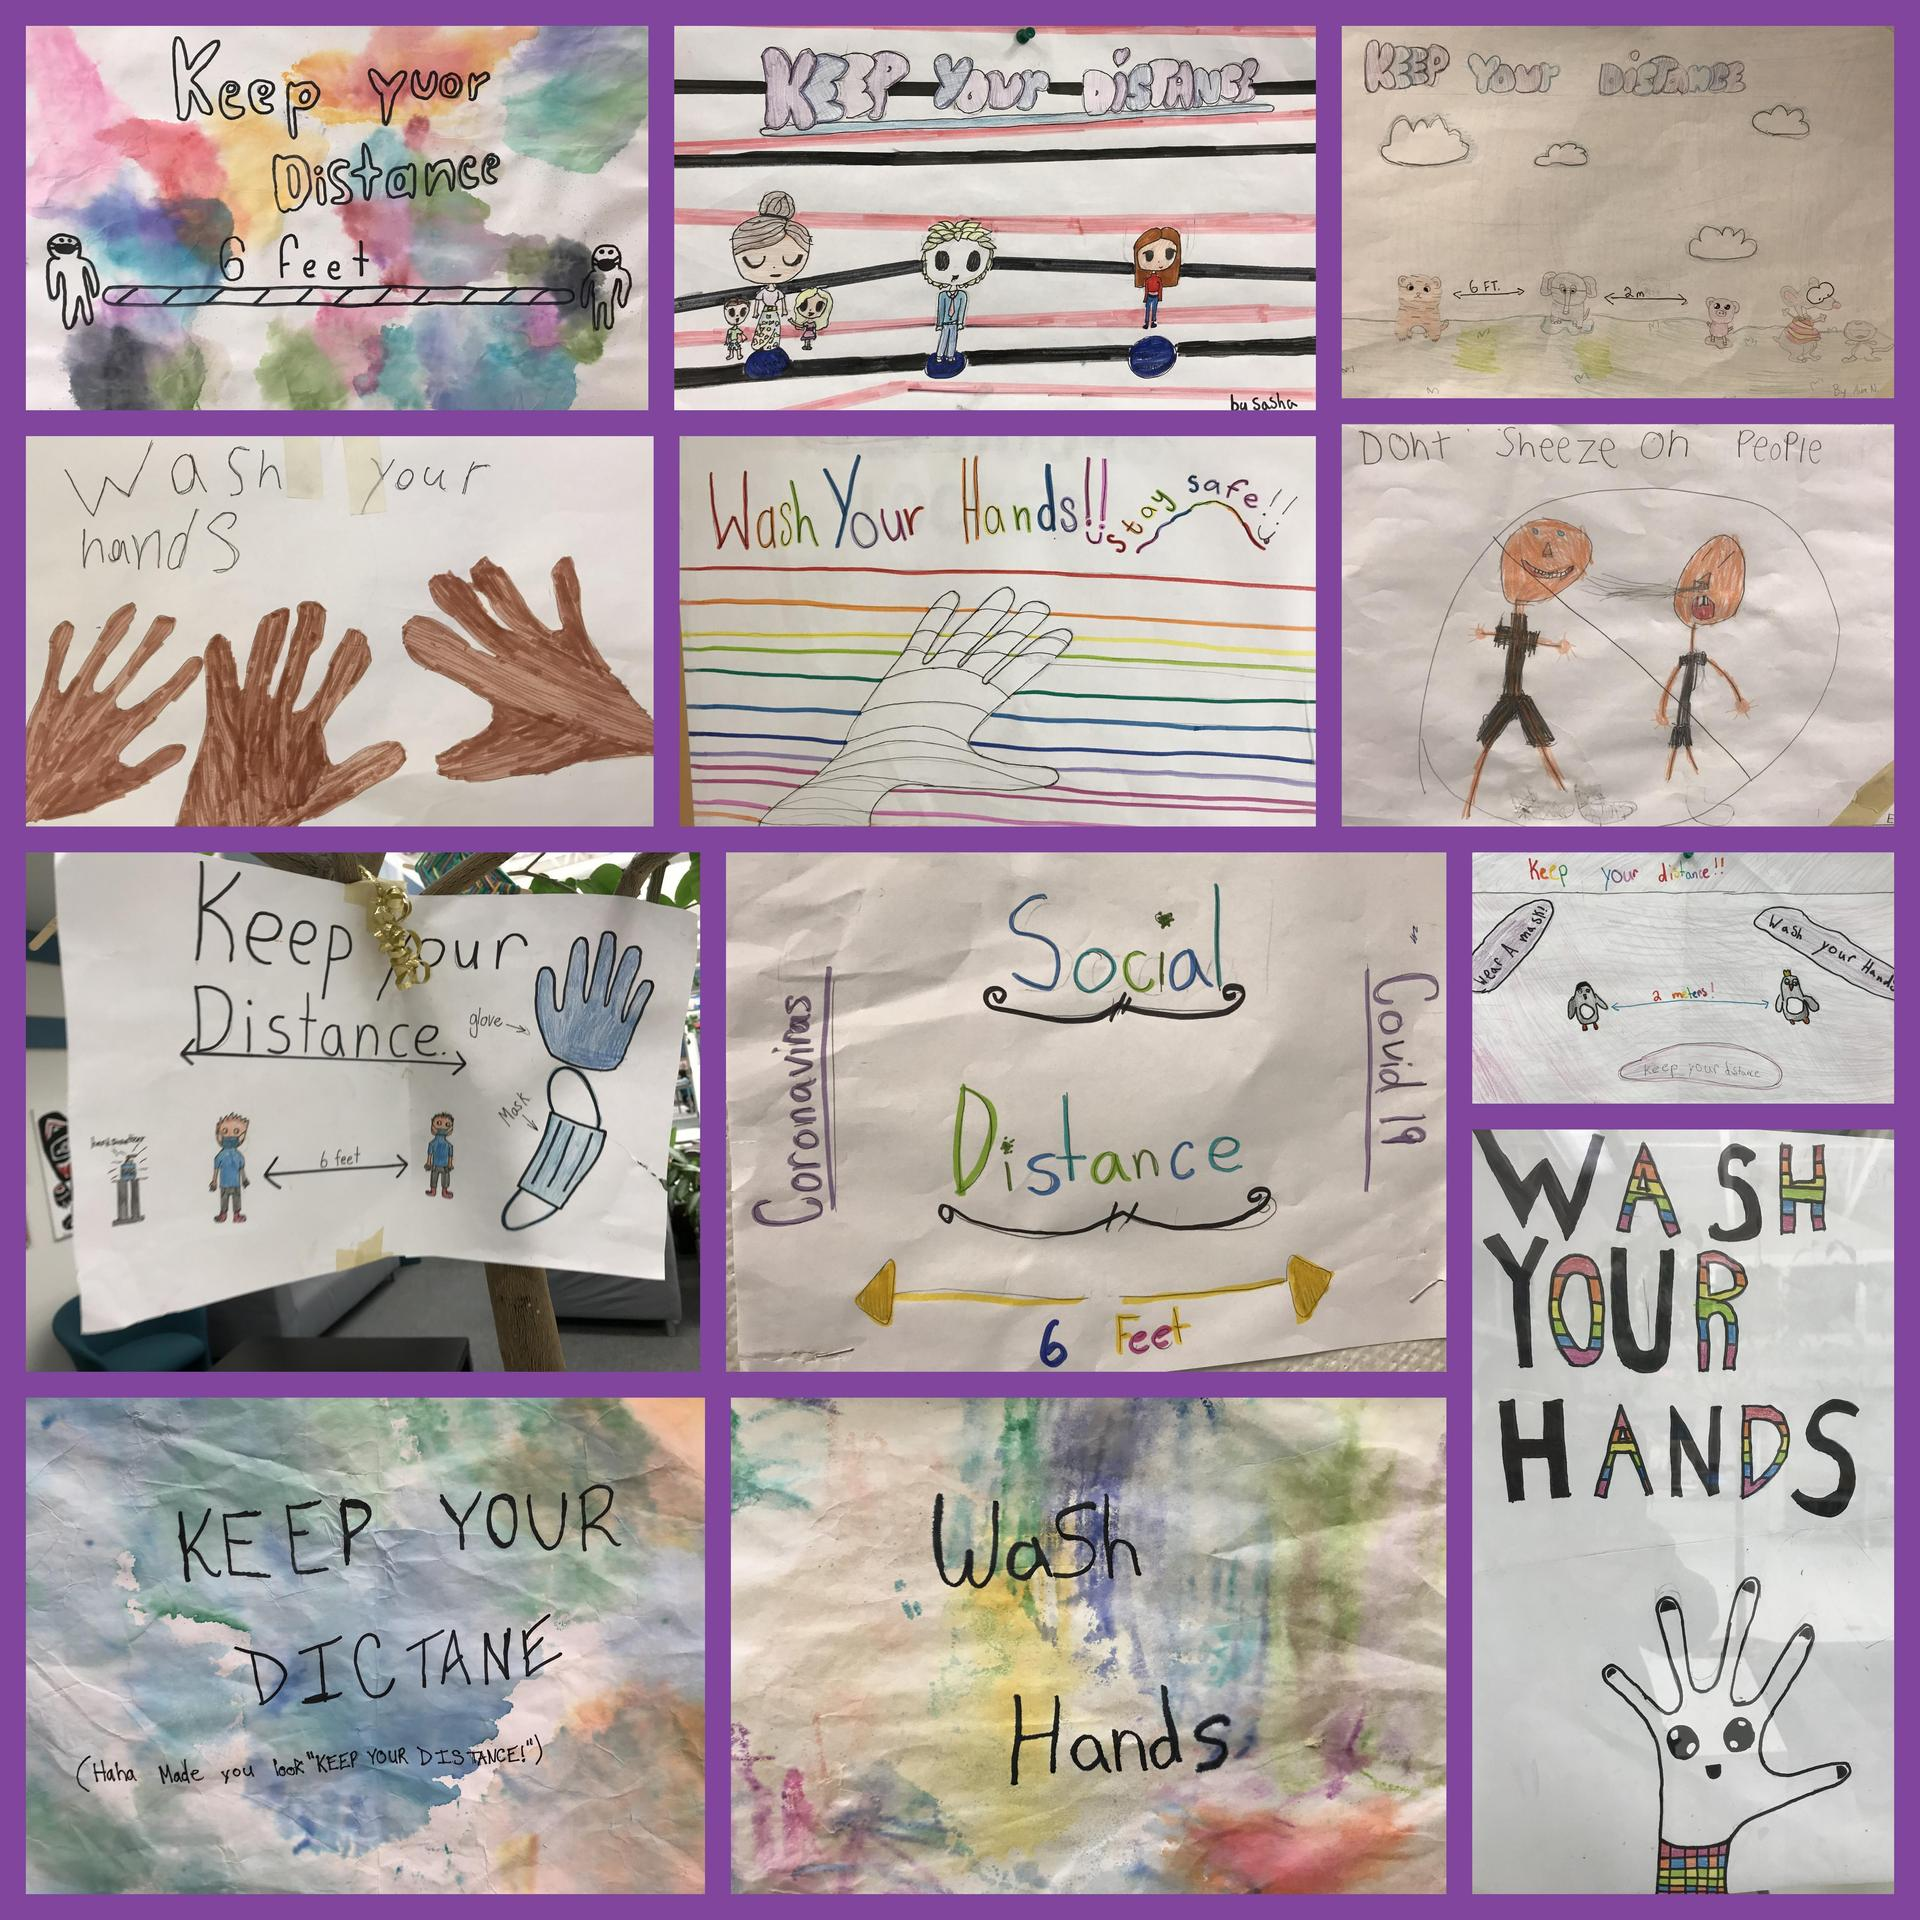 Health and Safety posters by Div 1